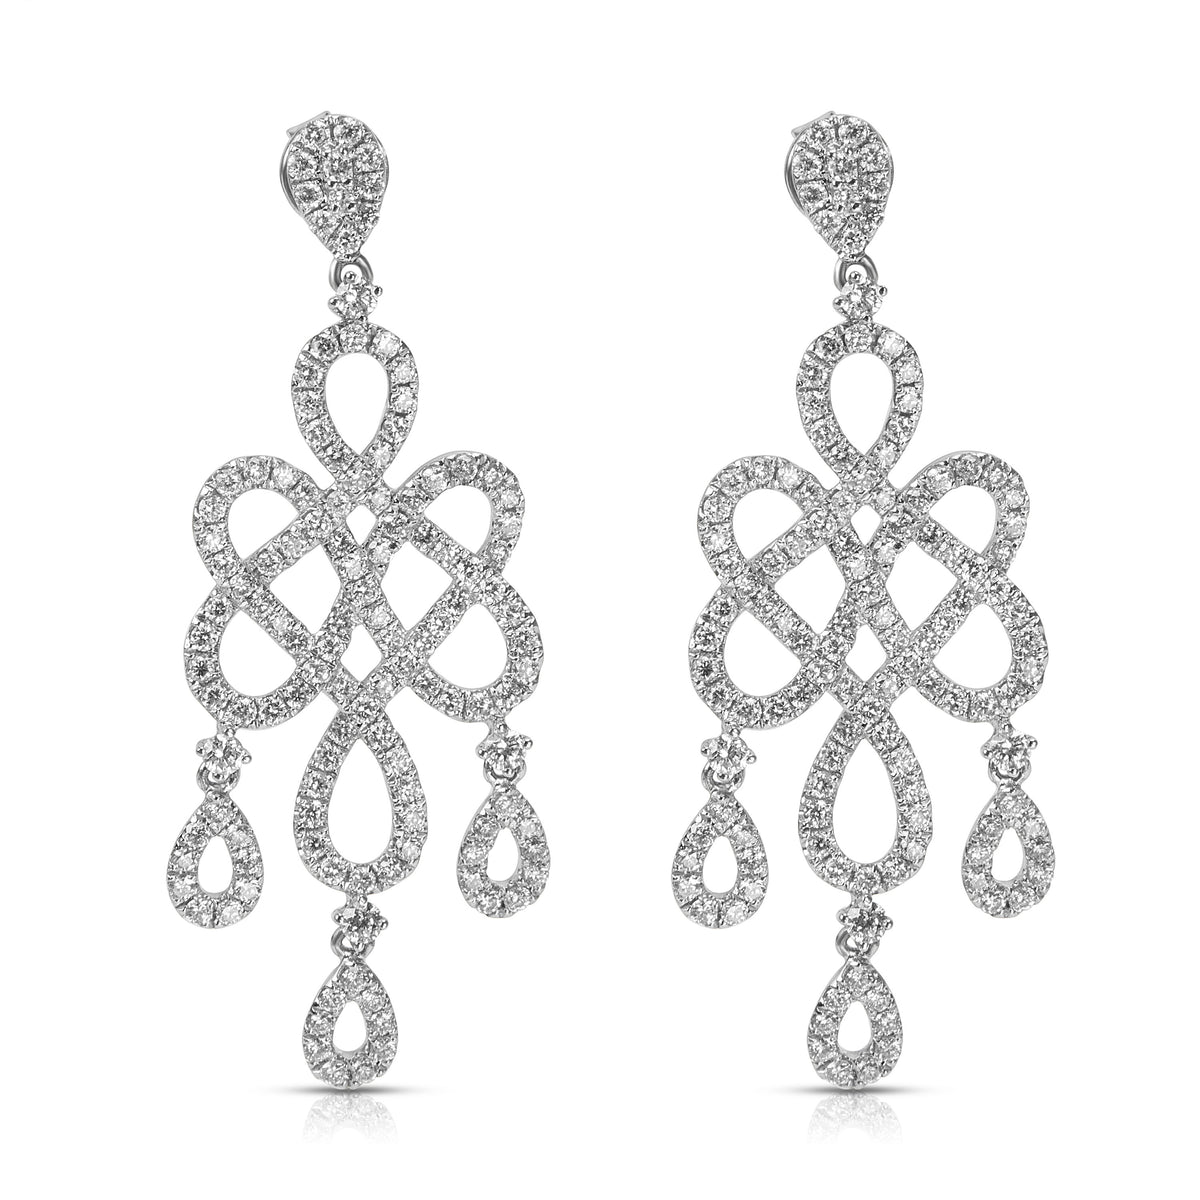 BRAND NEW Chandelier Earrings in 18K White Gold with Diamonds (2.75 CTW)